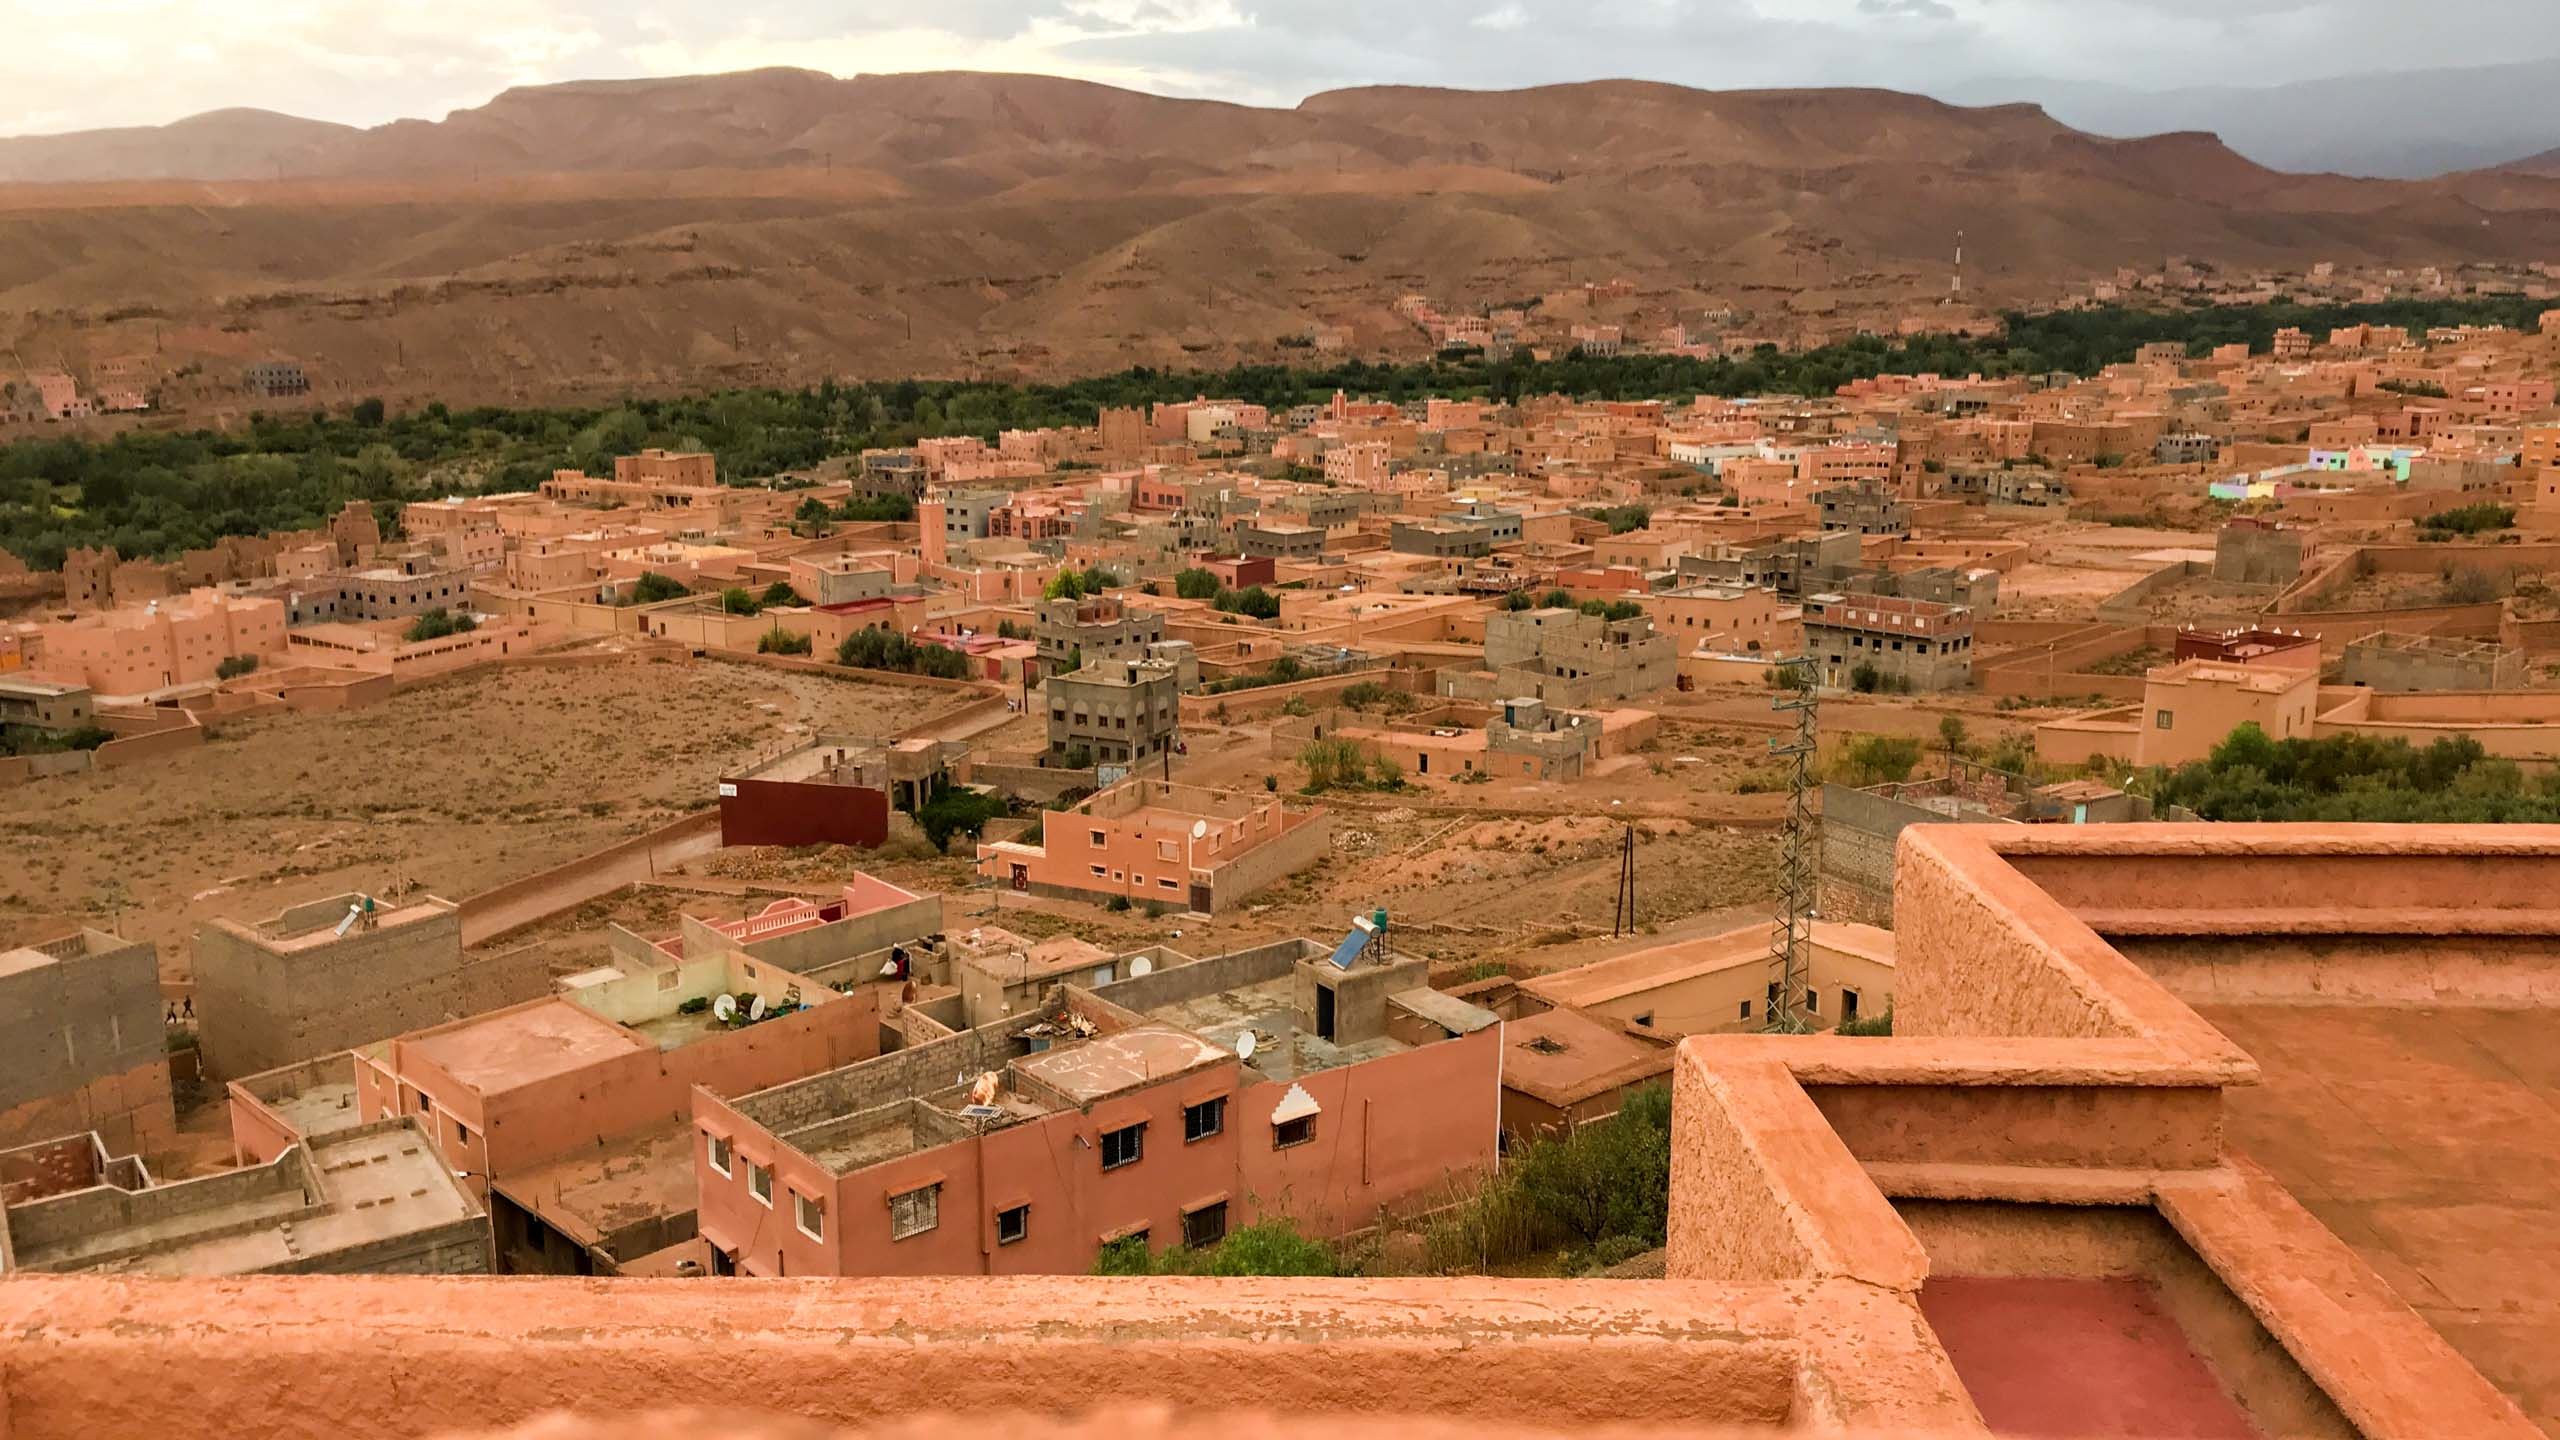 Aerial view of Morocco town